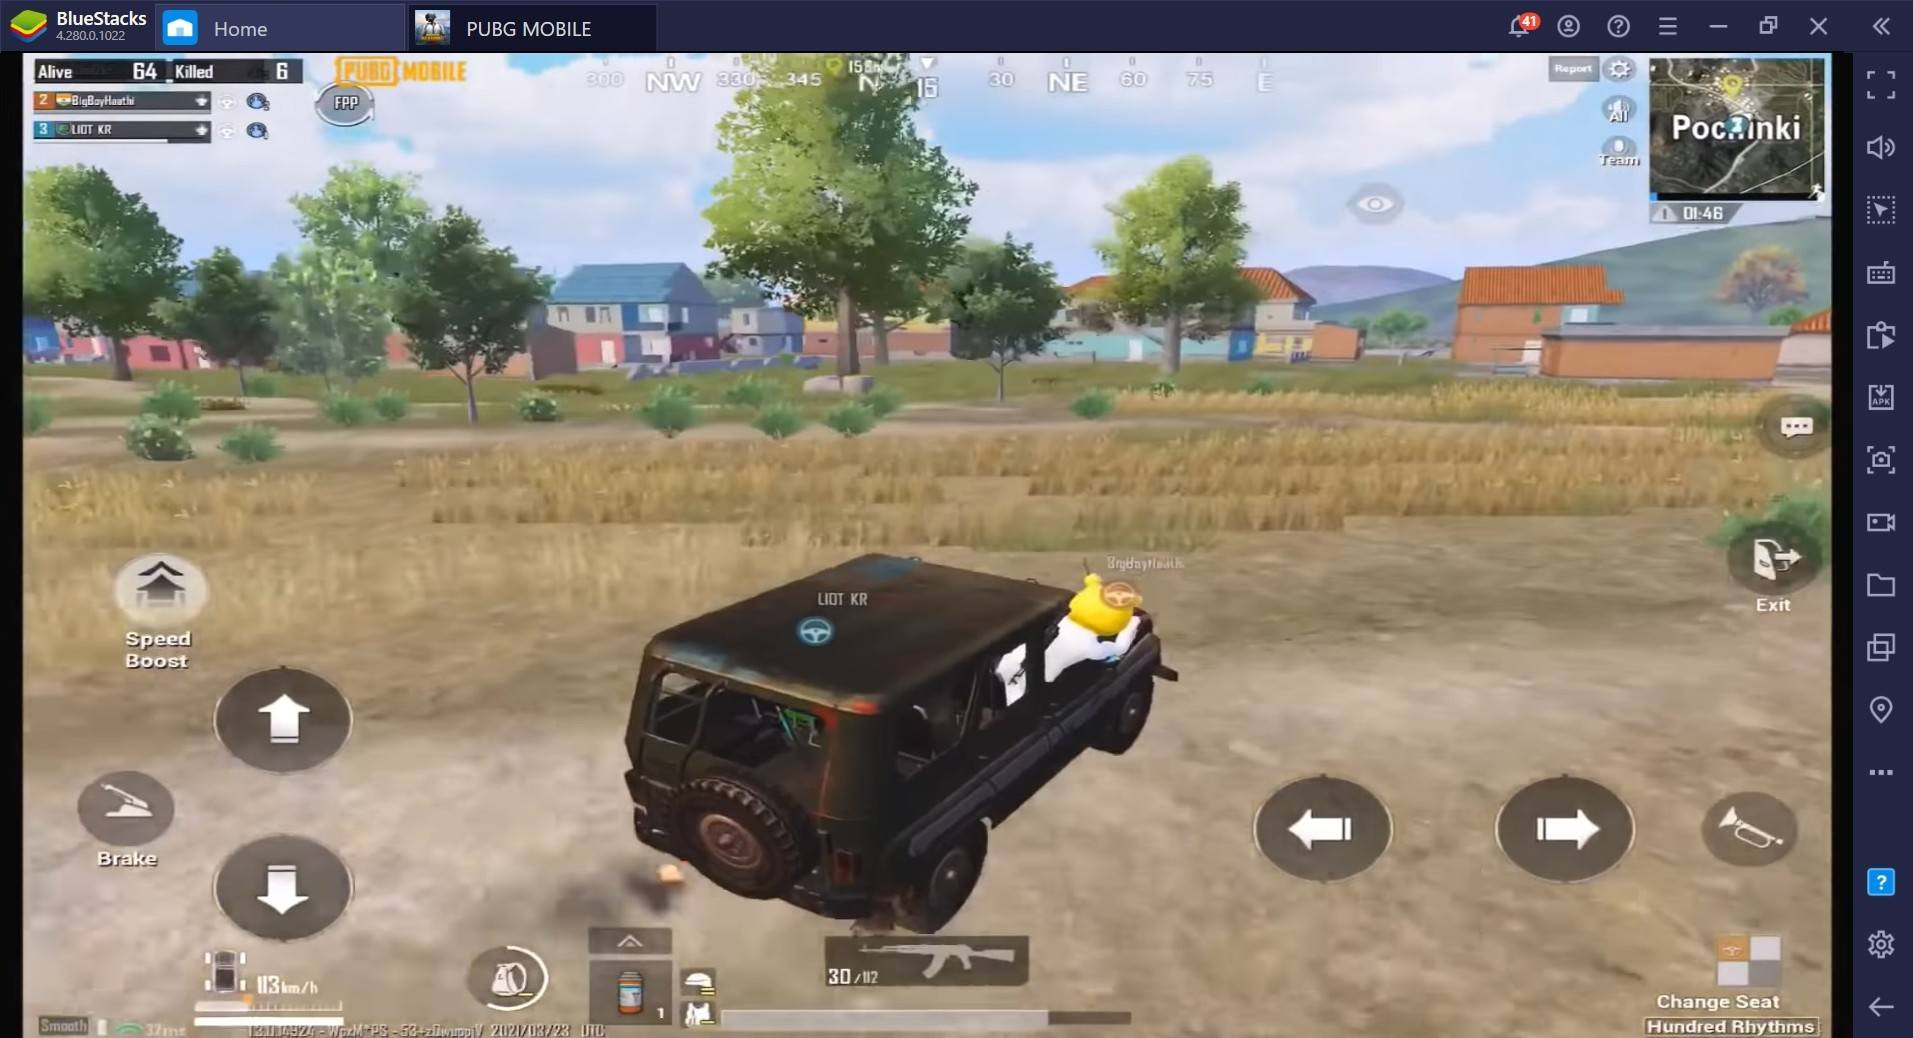 PUBG Mobile Guide: How To Rush an Airdrop